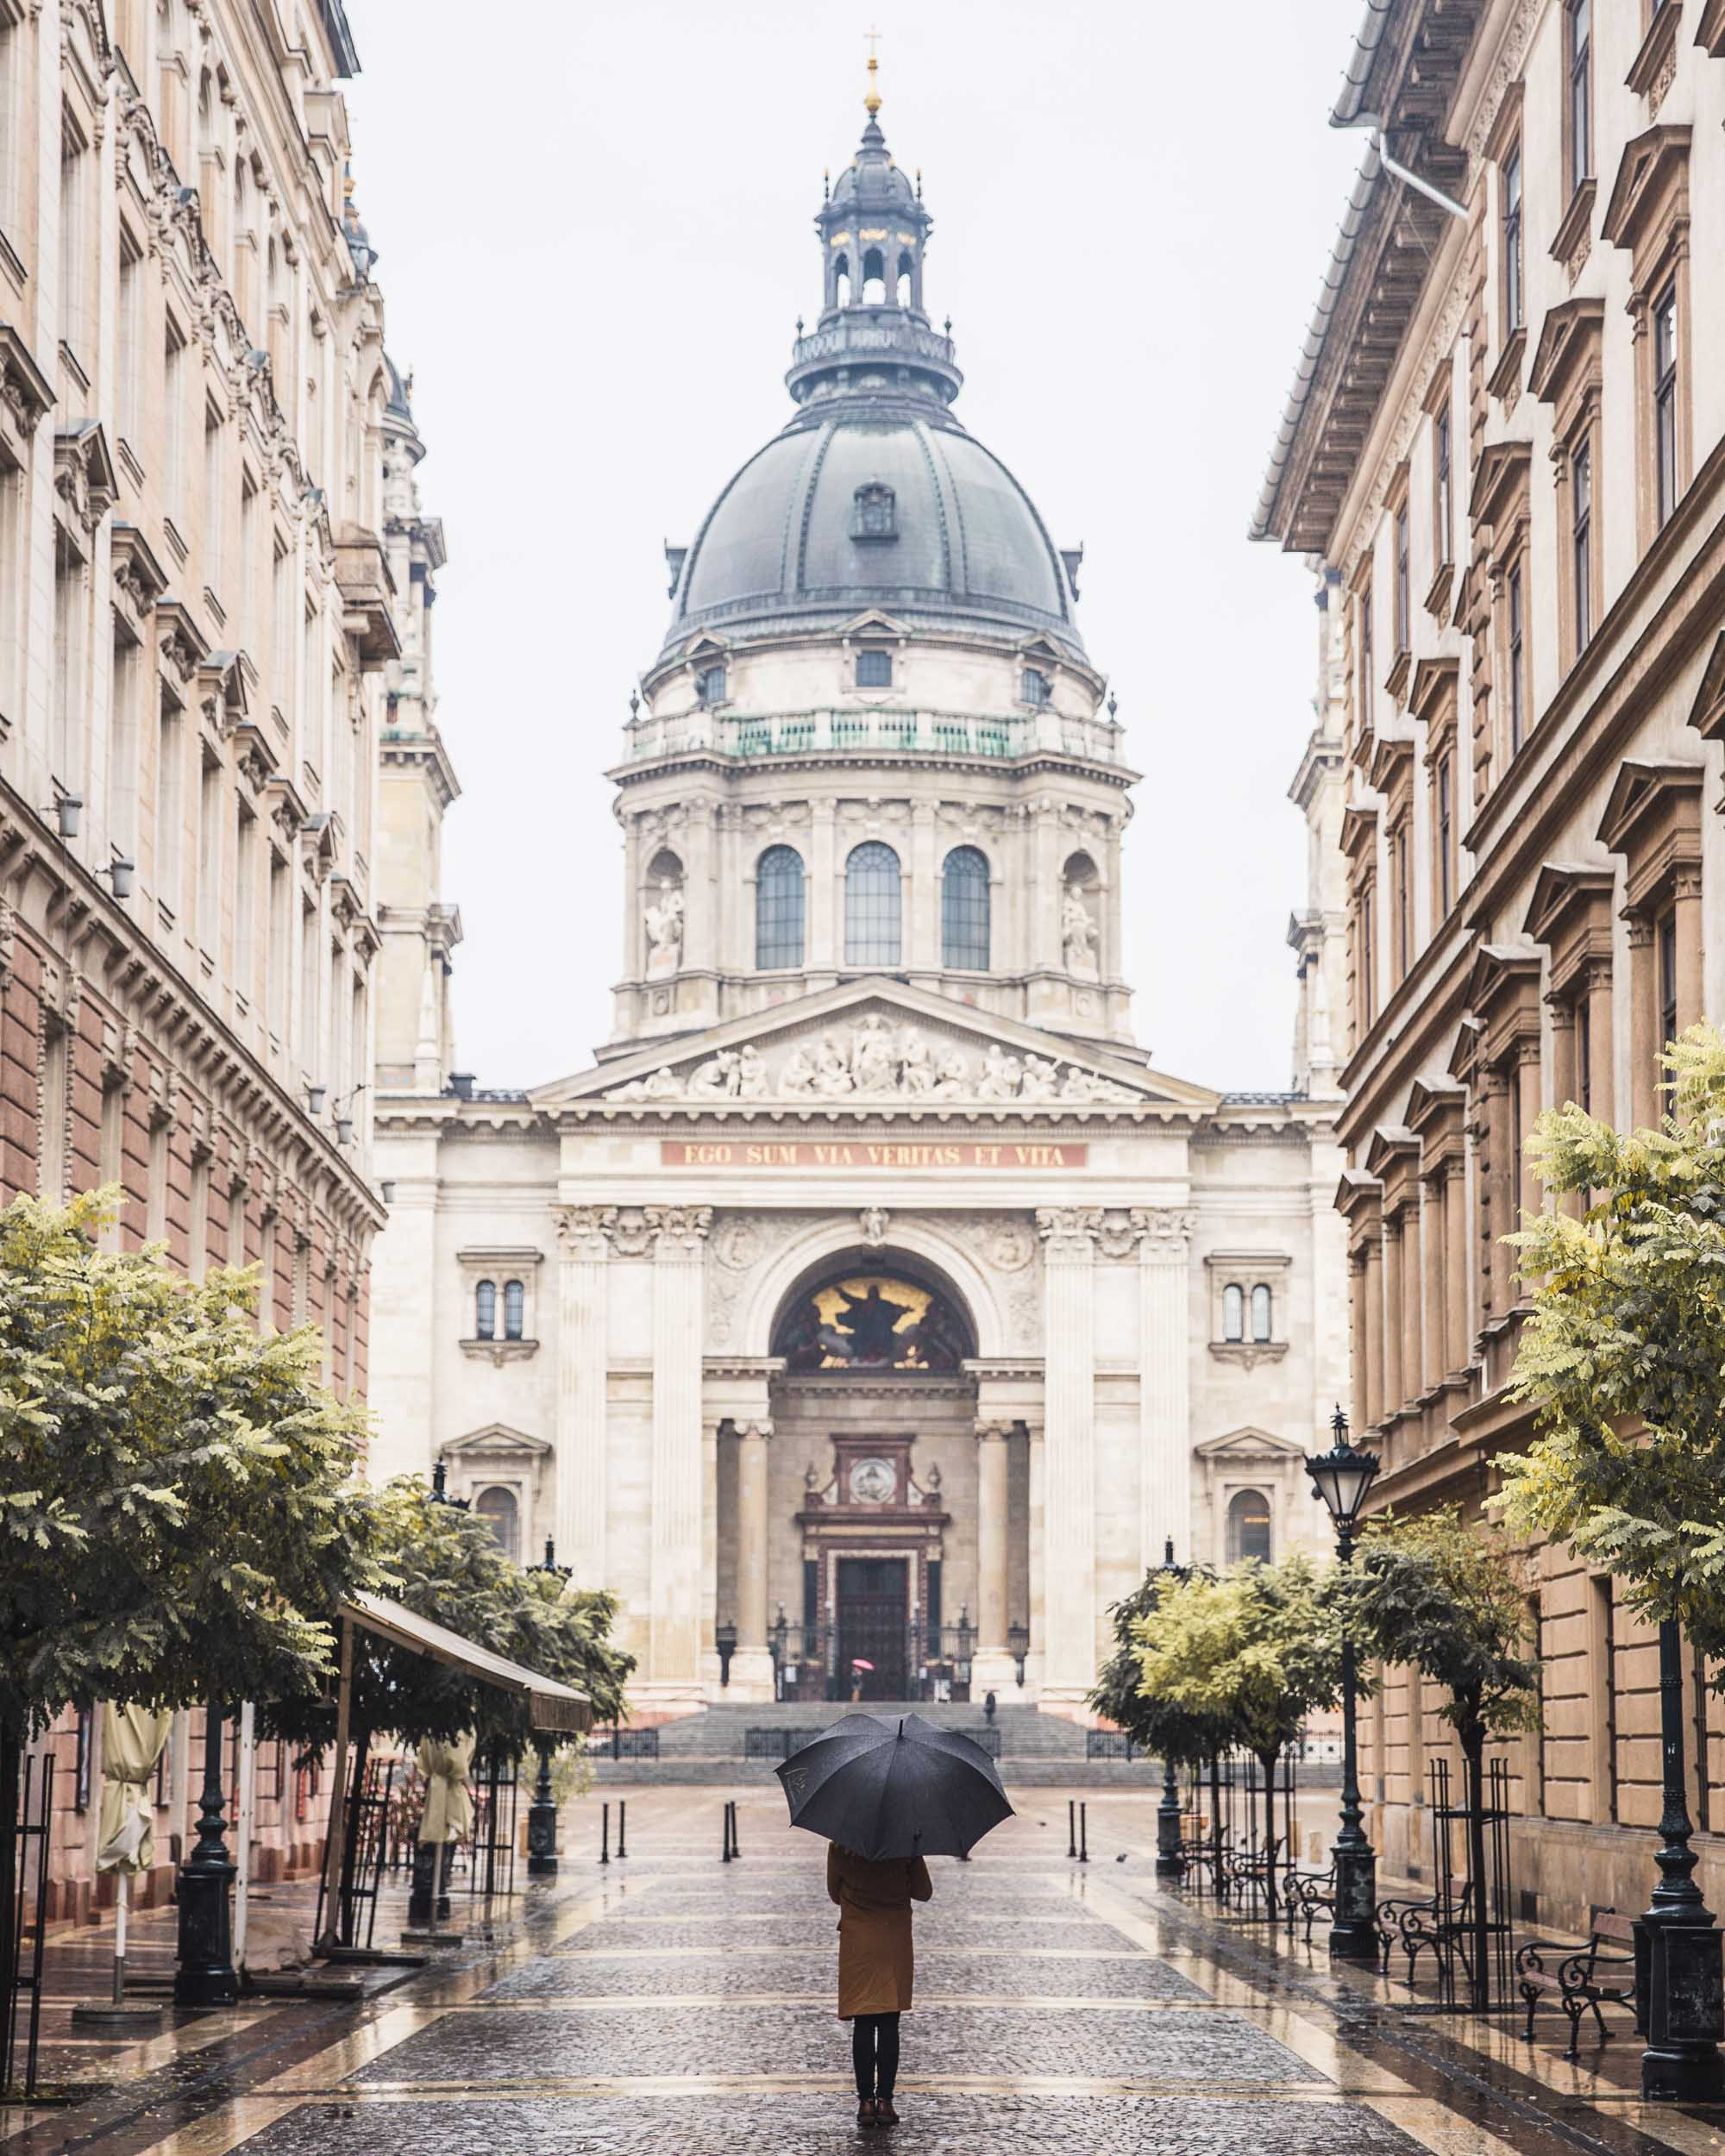 St Stephen's Basilica in the rain budapest hungary